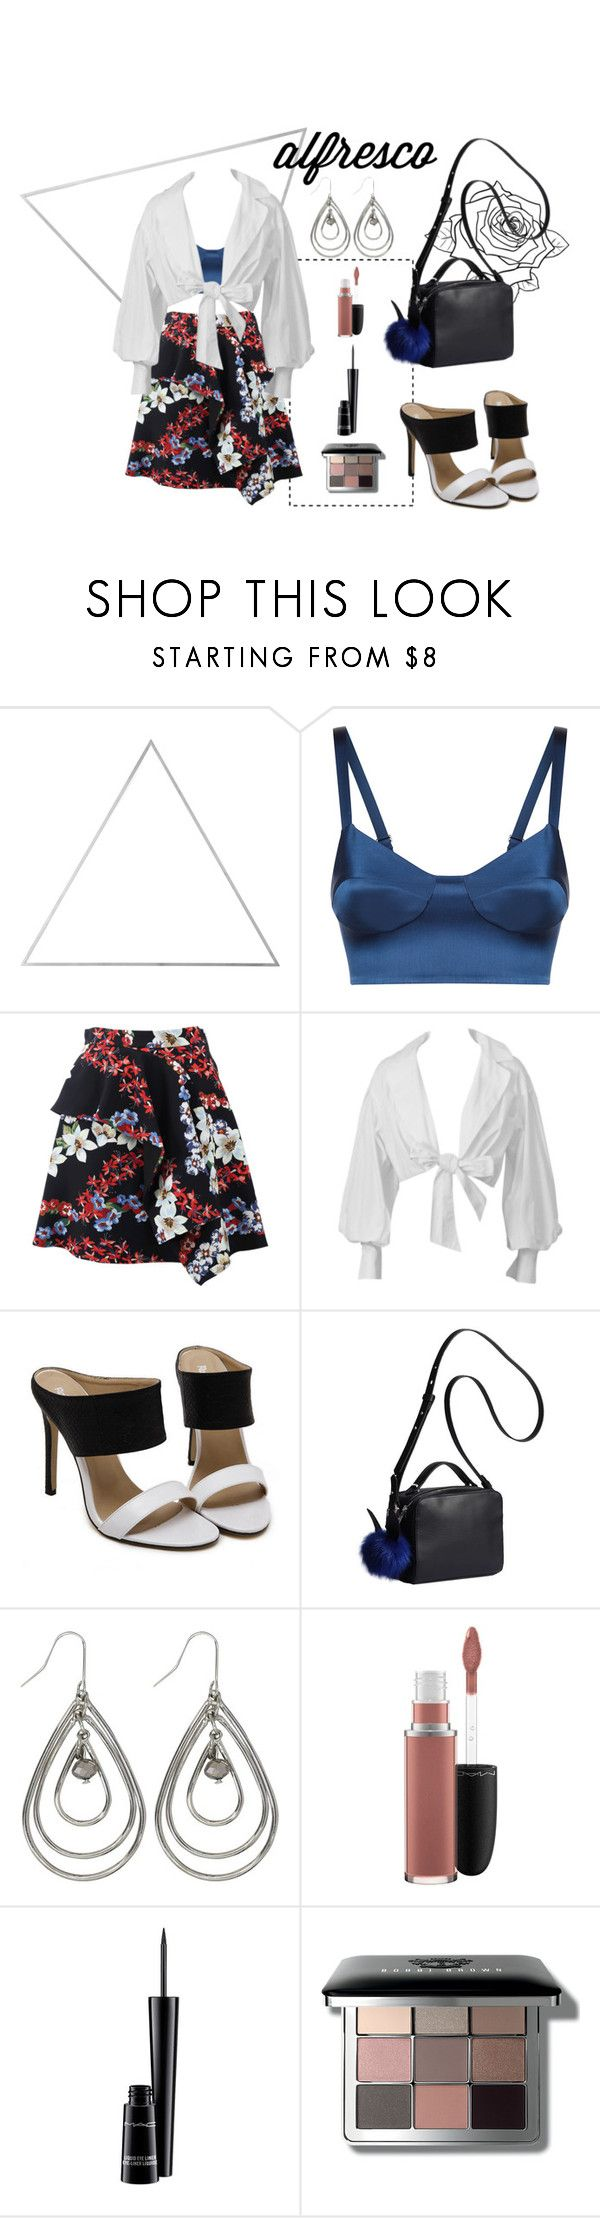 """Alfresco Dinner"" by zesirgenci ❤ liked on Polyvore featuring Menu, MSGM, Montana, Kendall + Kylie, M&Co, MAC Cosmetics and Bobbi Brown Cosmetics"